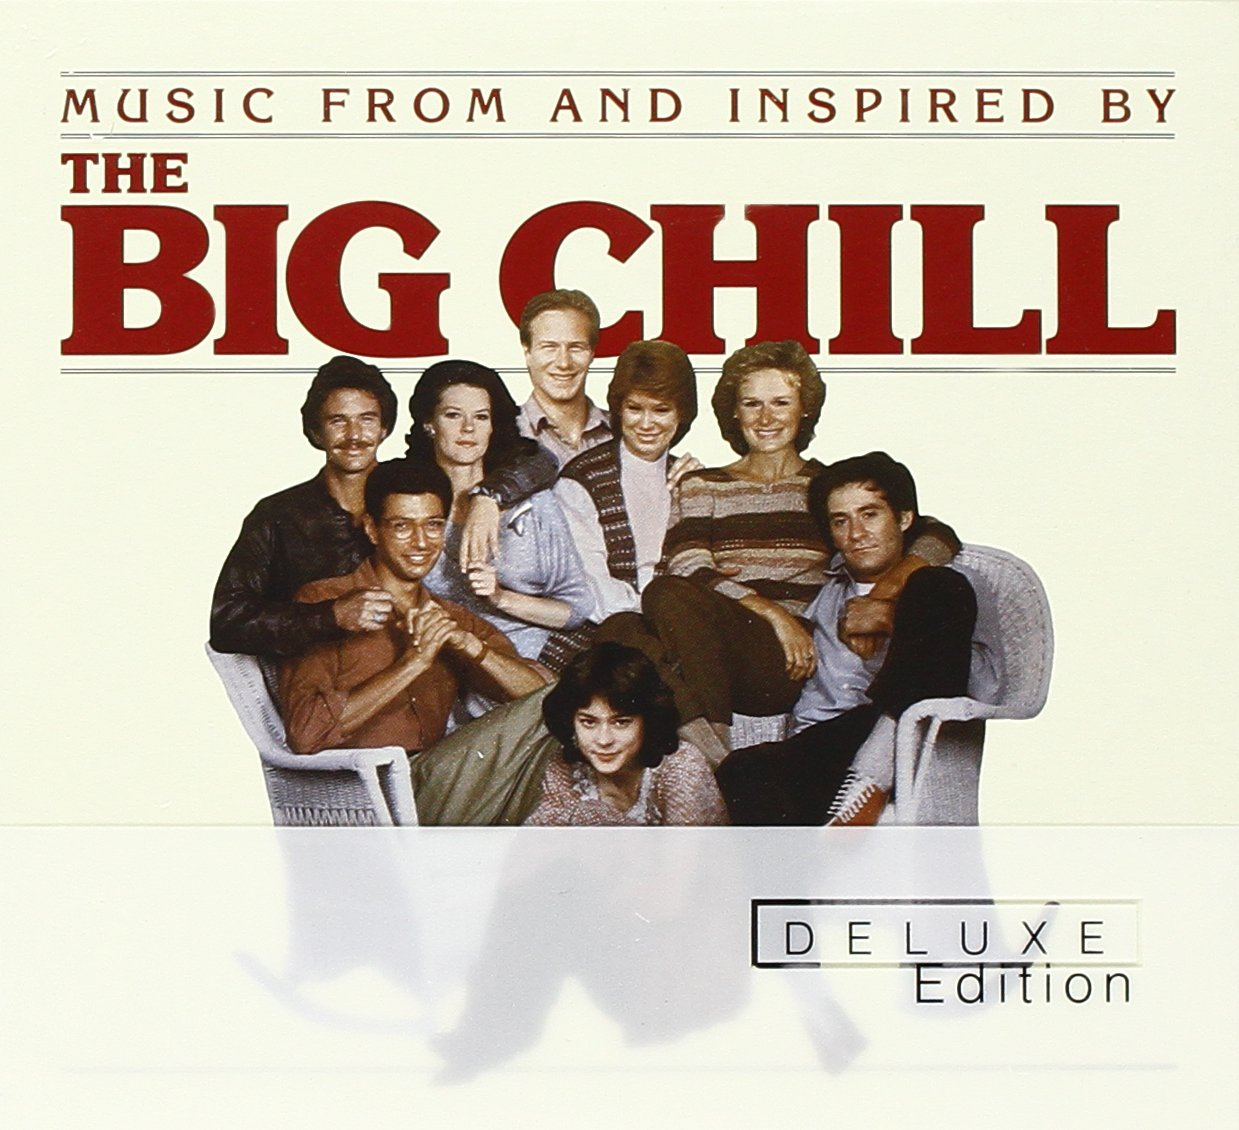 The Big Chill - Deluxe Edition by Hip-O